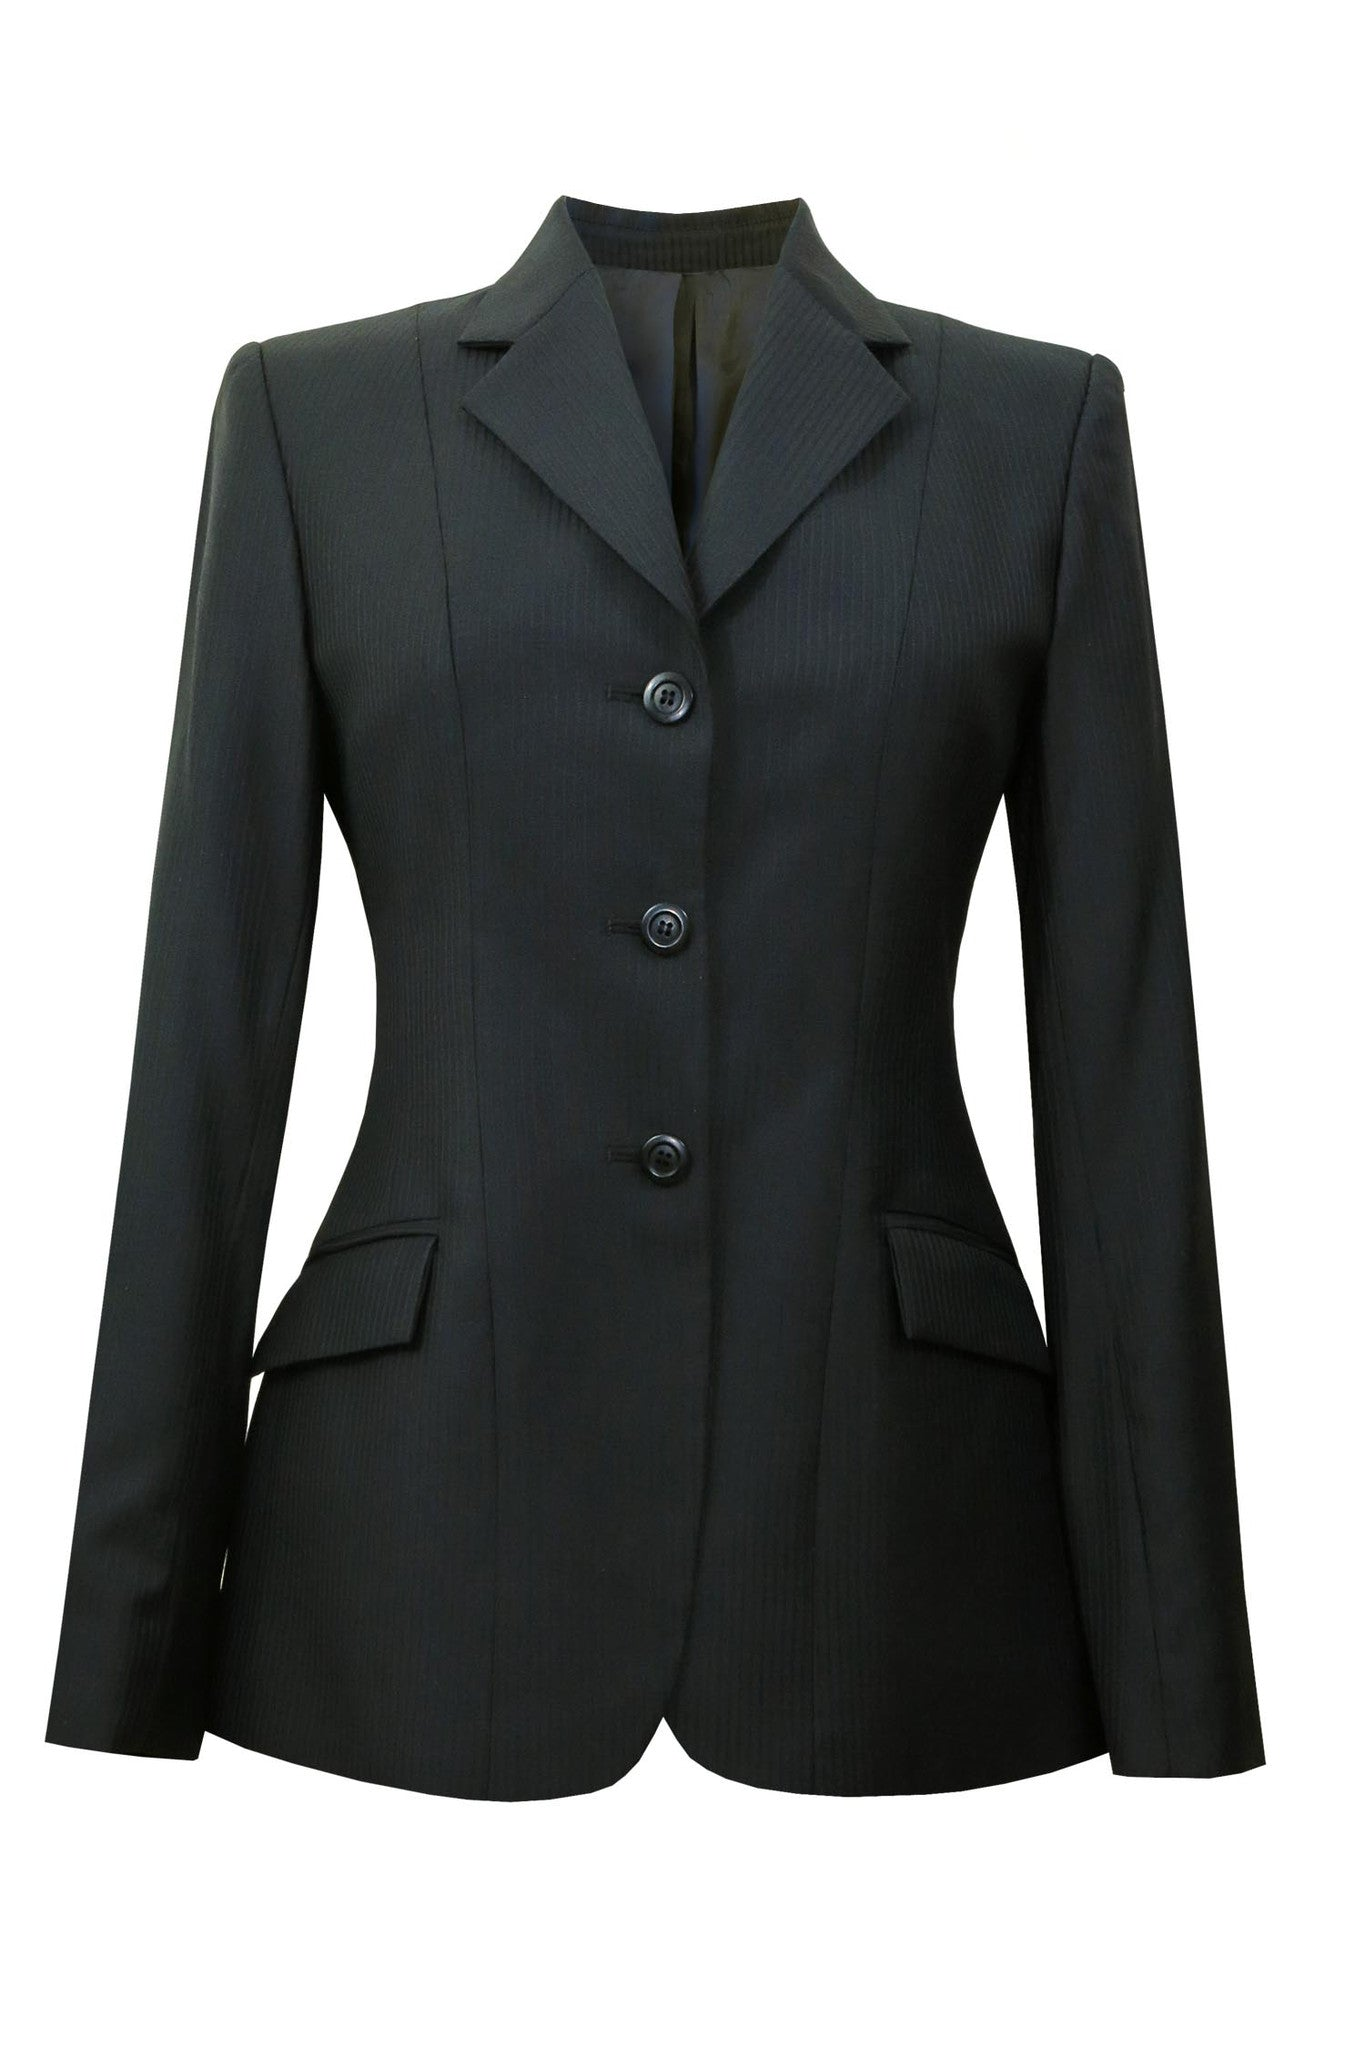 Black wool jacket with thin tonal stripes.